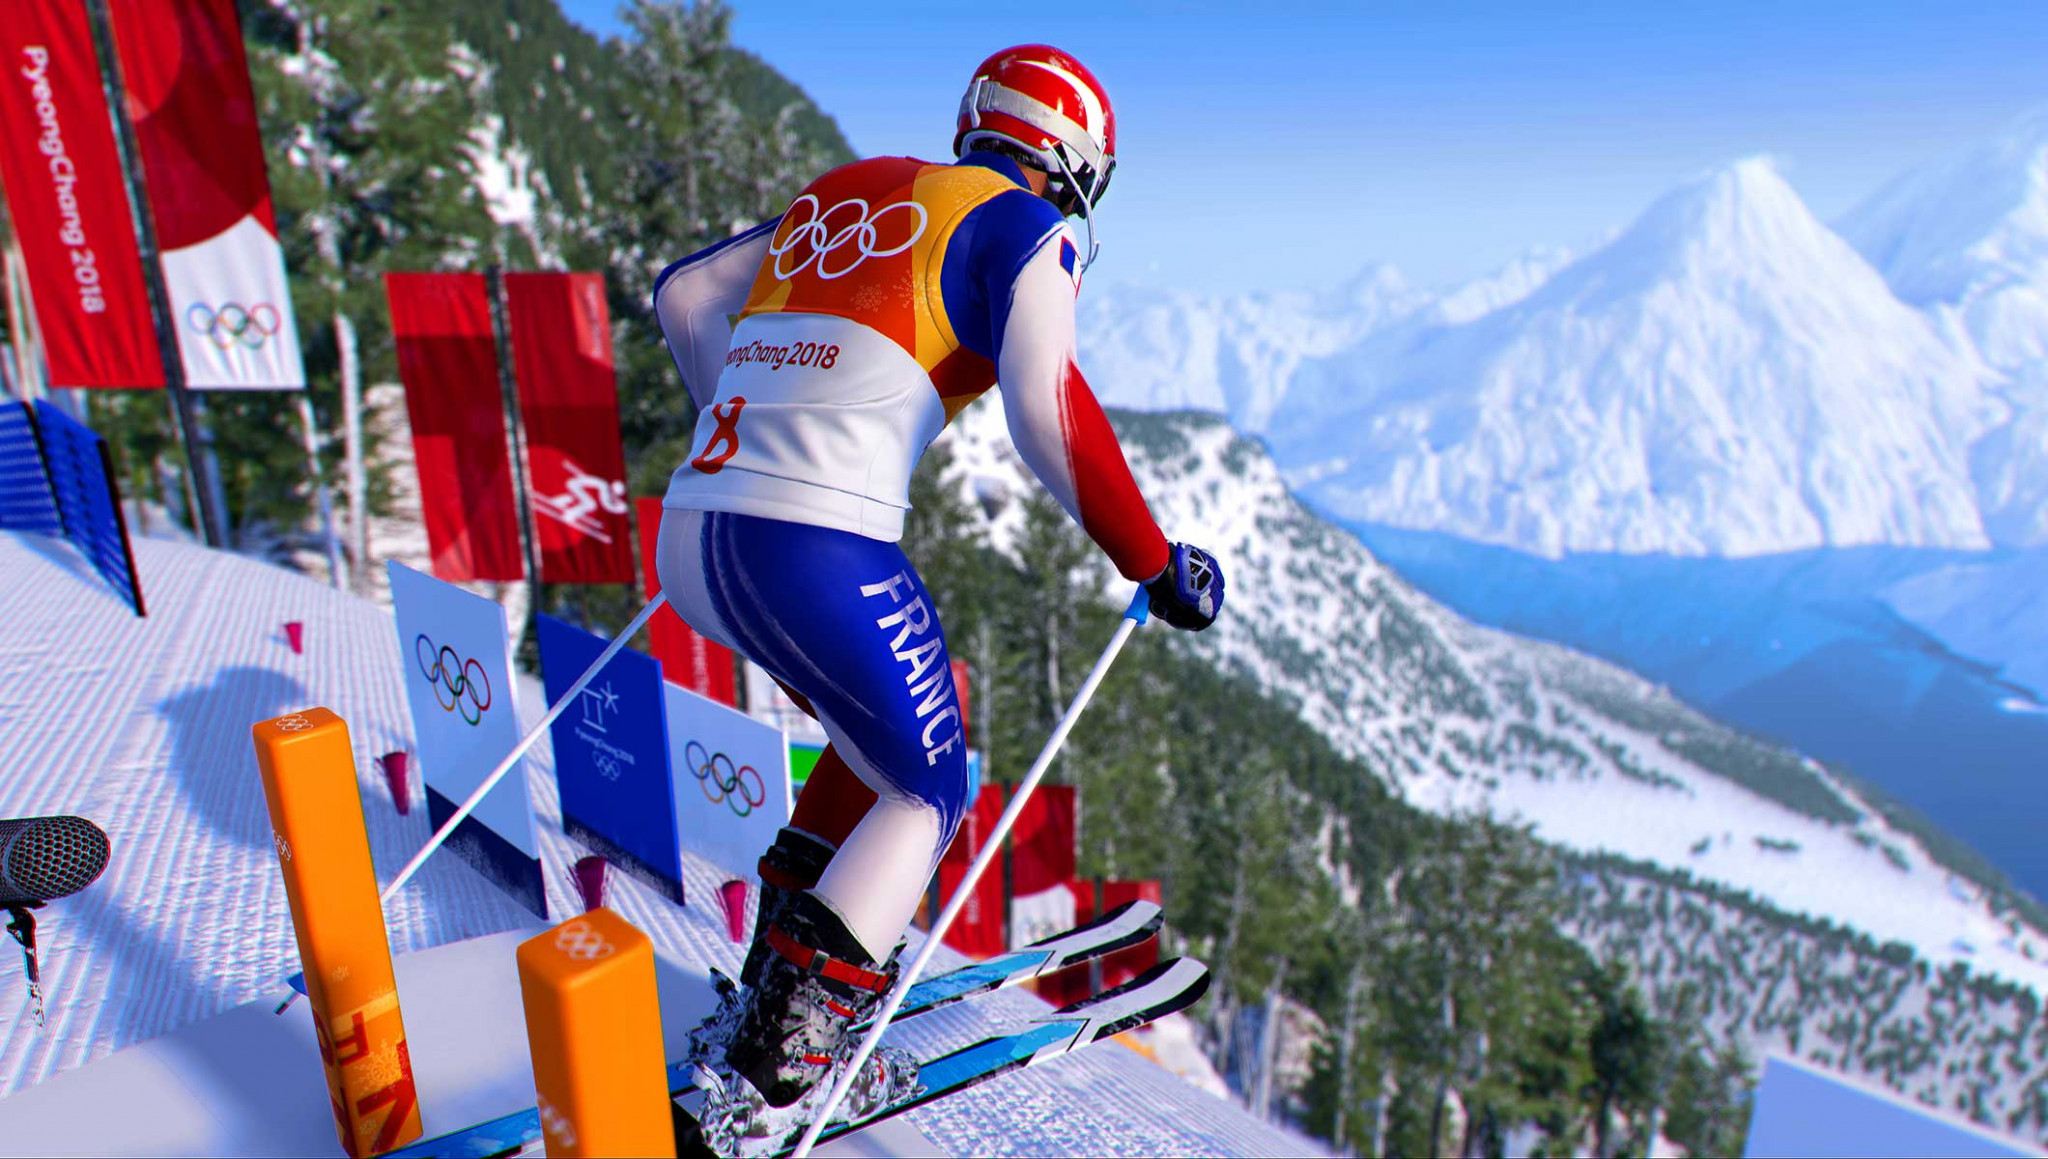 An official video game for the 2018 Winter Olympic Games in Pyeongchang has gone on sale ©IOC